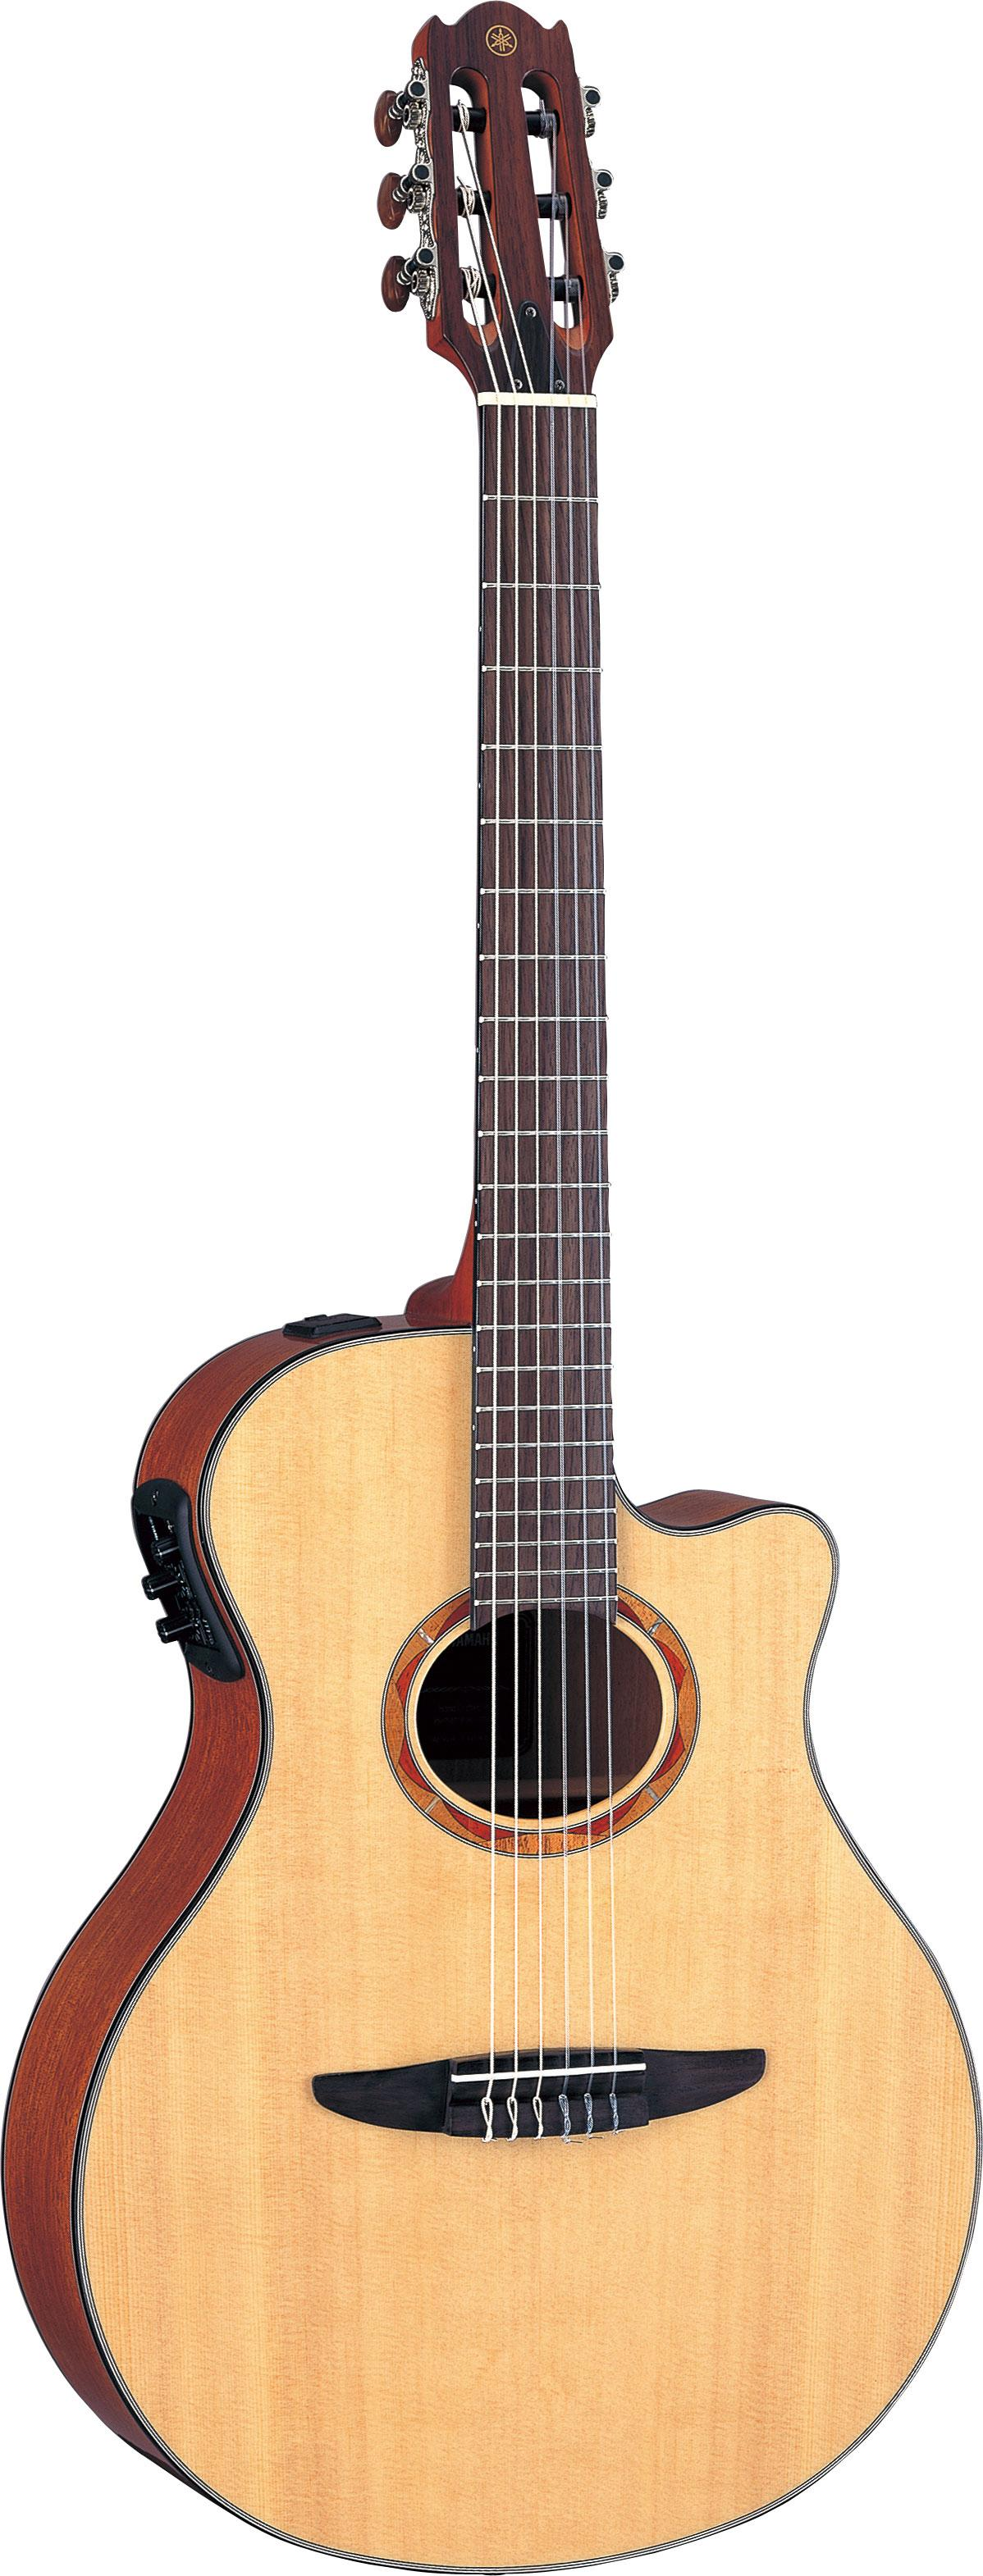 yamaha ntx700 thin line cutaway acoustic electric w case. Black Bedroom Furniture Sets. Home Design Ideas